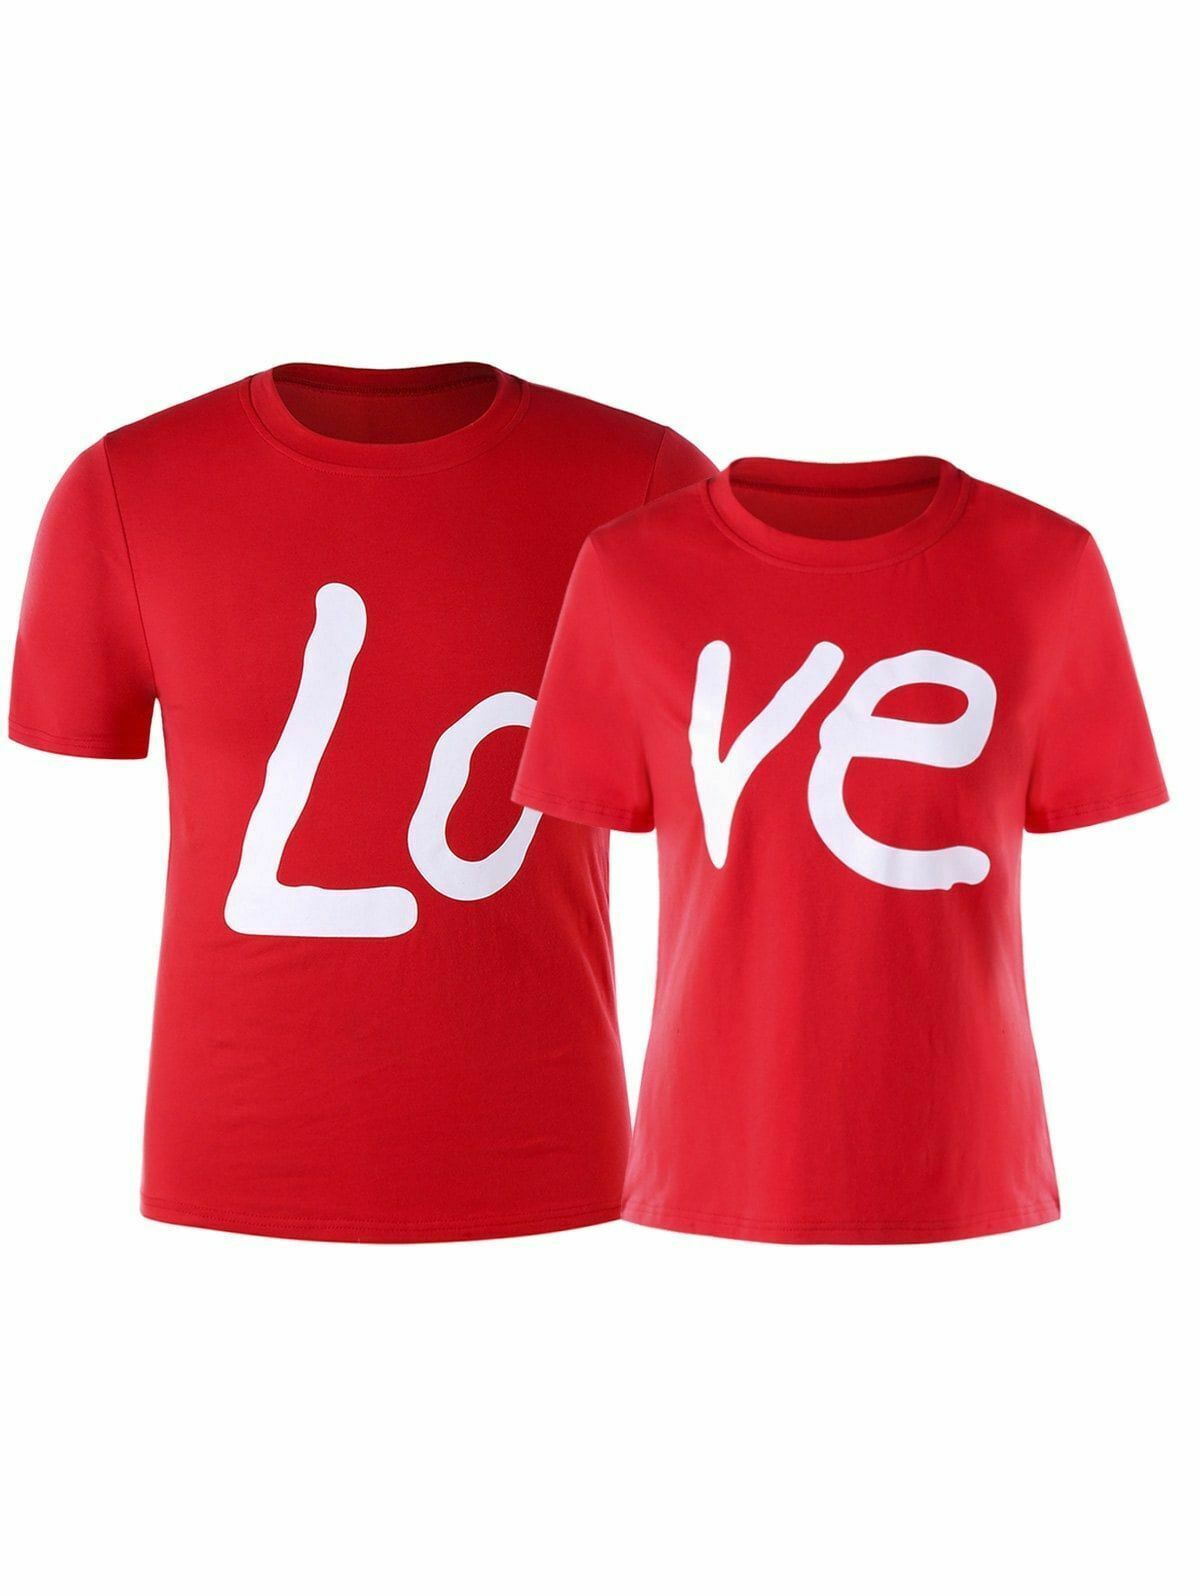 Customizable T-Shirts Side Parts /& Skinny Jeans T-Shirt Personalized T-Shirts Women/'s Customizable T-Shirts